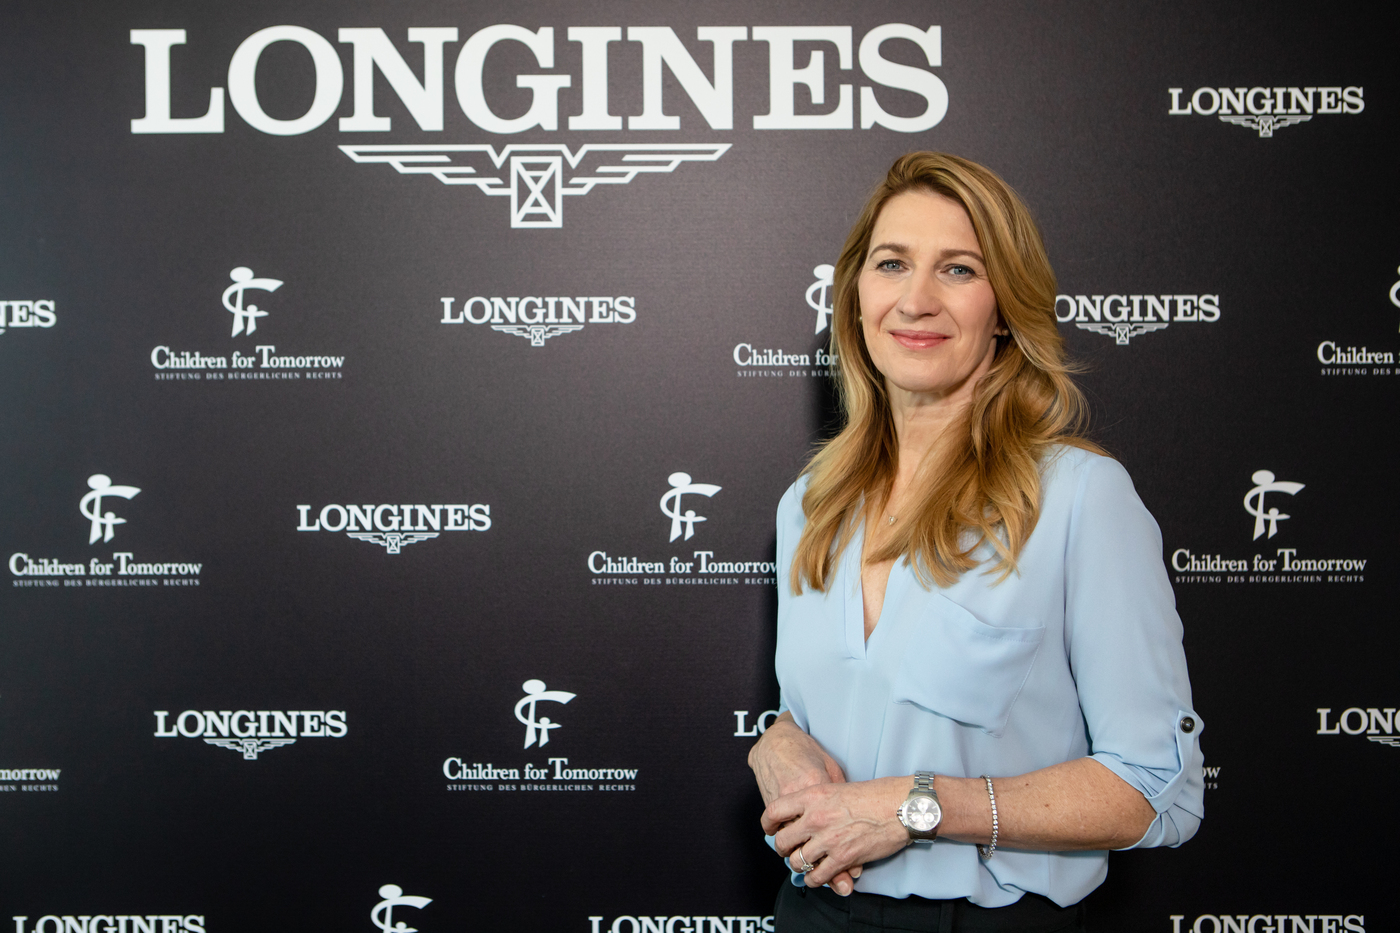 Longines Corporate Event: Longines Ambassador of Elegance Stefanie Graf opens the doors of her foundation in Hamburg 7